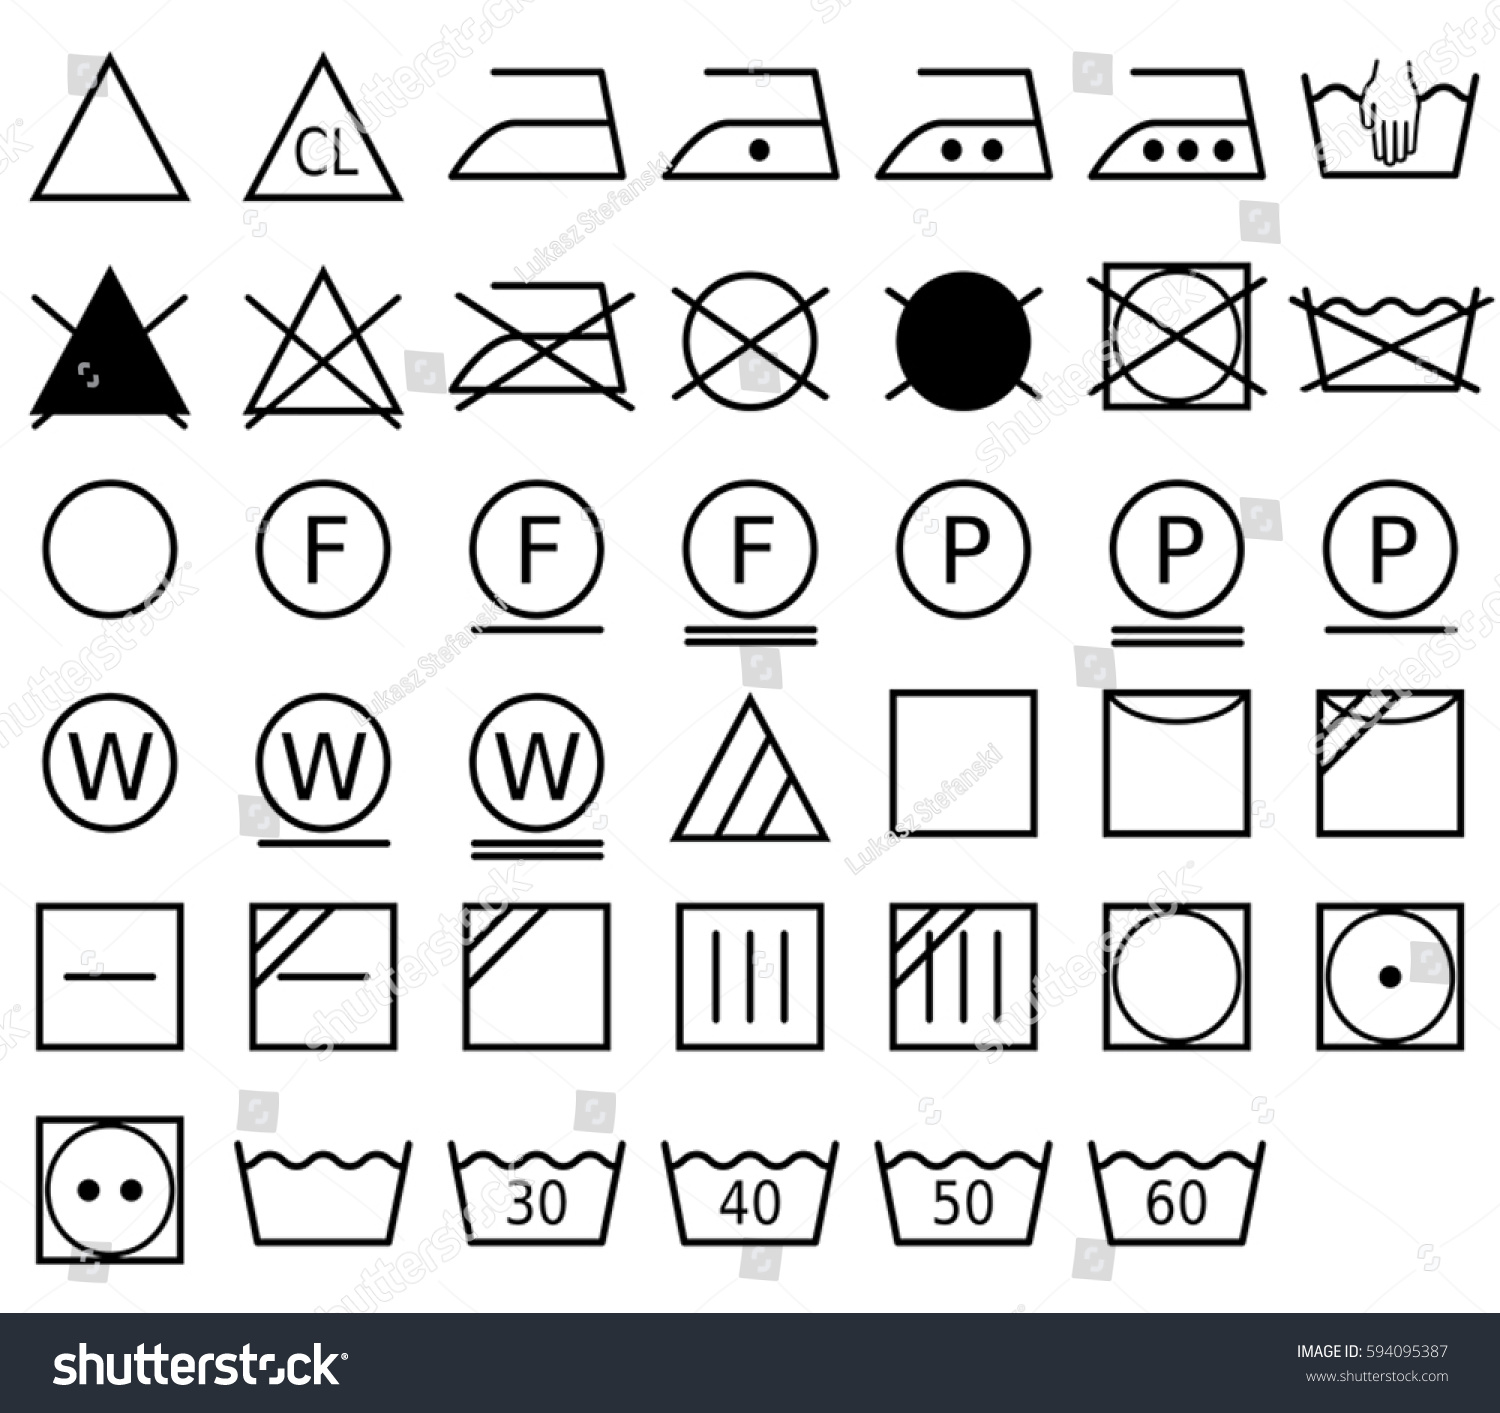 Laundry symbol called care symbol pictogram stock vector 594095387 a laundry symbol also called a care symbol is a pictogram which represents a biocorpaavc Image collections